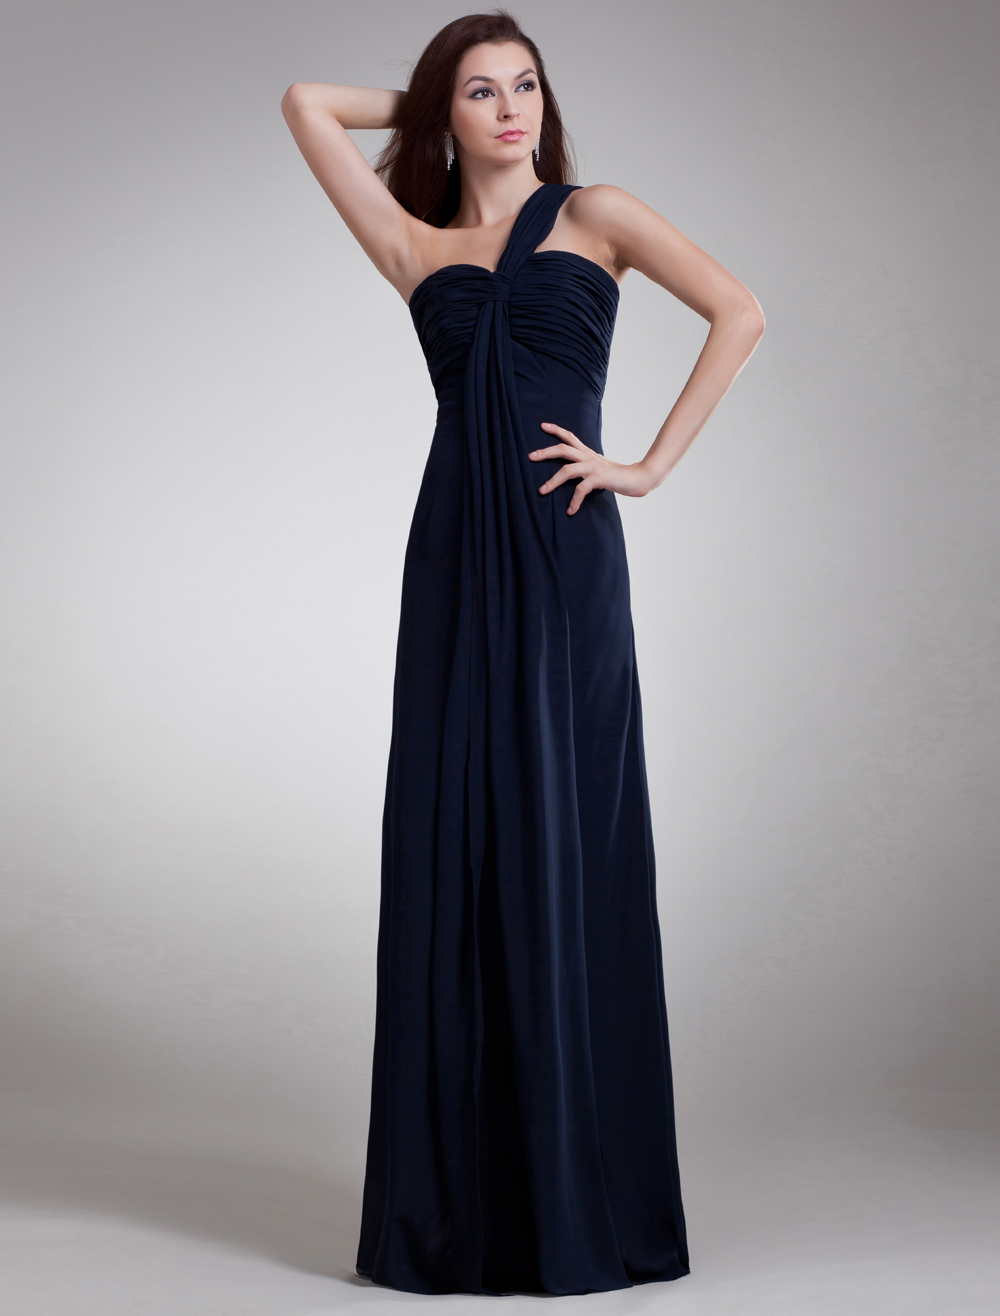 Buy Elegant Ball Gown Dark Navy Chiffon Long Evening Dress with Cascading Ruffle One-Shoulder for $108.89 in Milanoo store